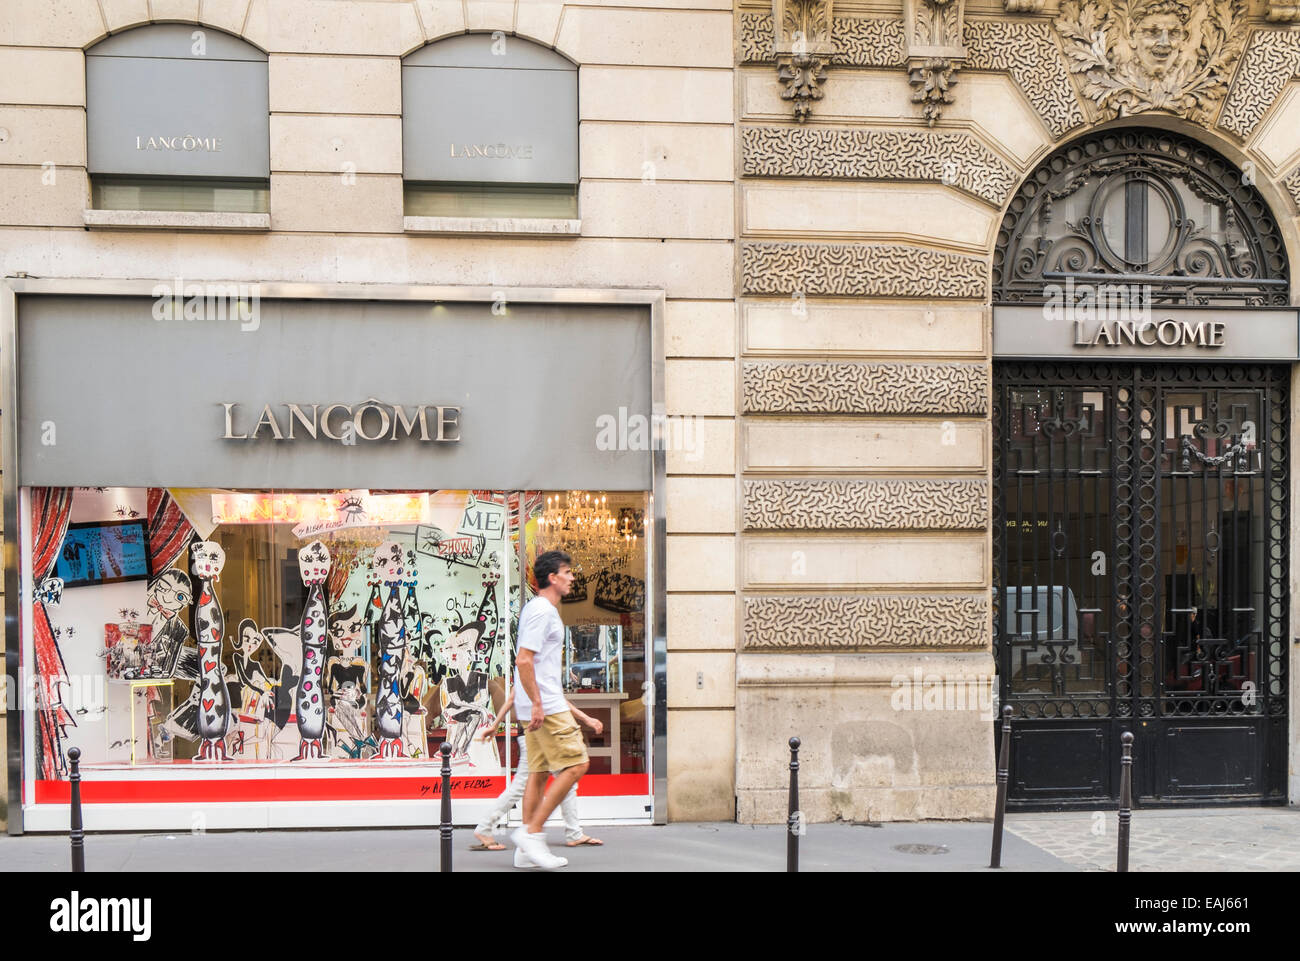 lancome store rue du faubourg st honor paris ile de france stock photo royalty free image. Black Bedroom Furniture Sets. Home Design Ideas